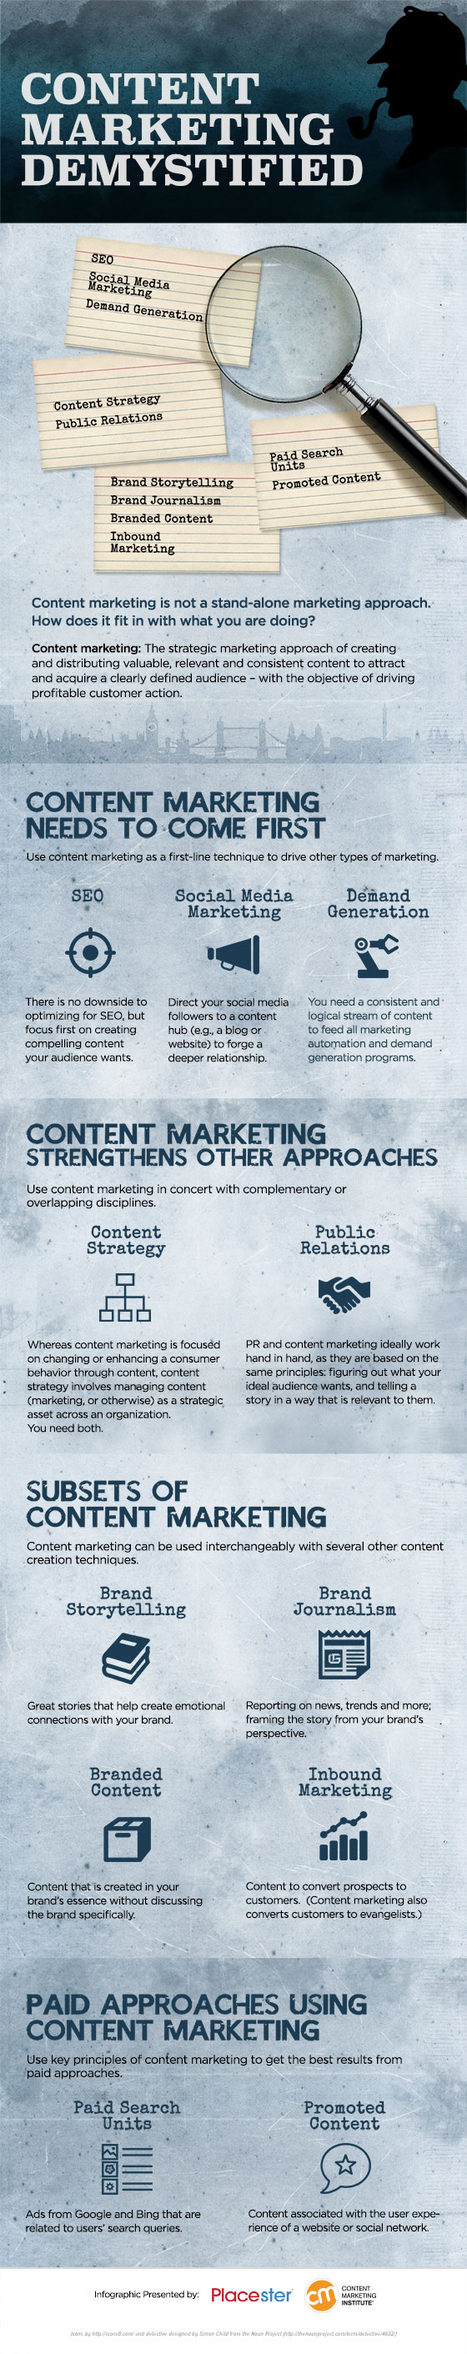 Where Content Marketing Fits in Your Marketing Plan | Marketing | Scoop.it